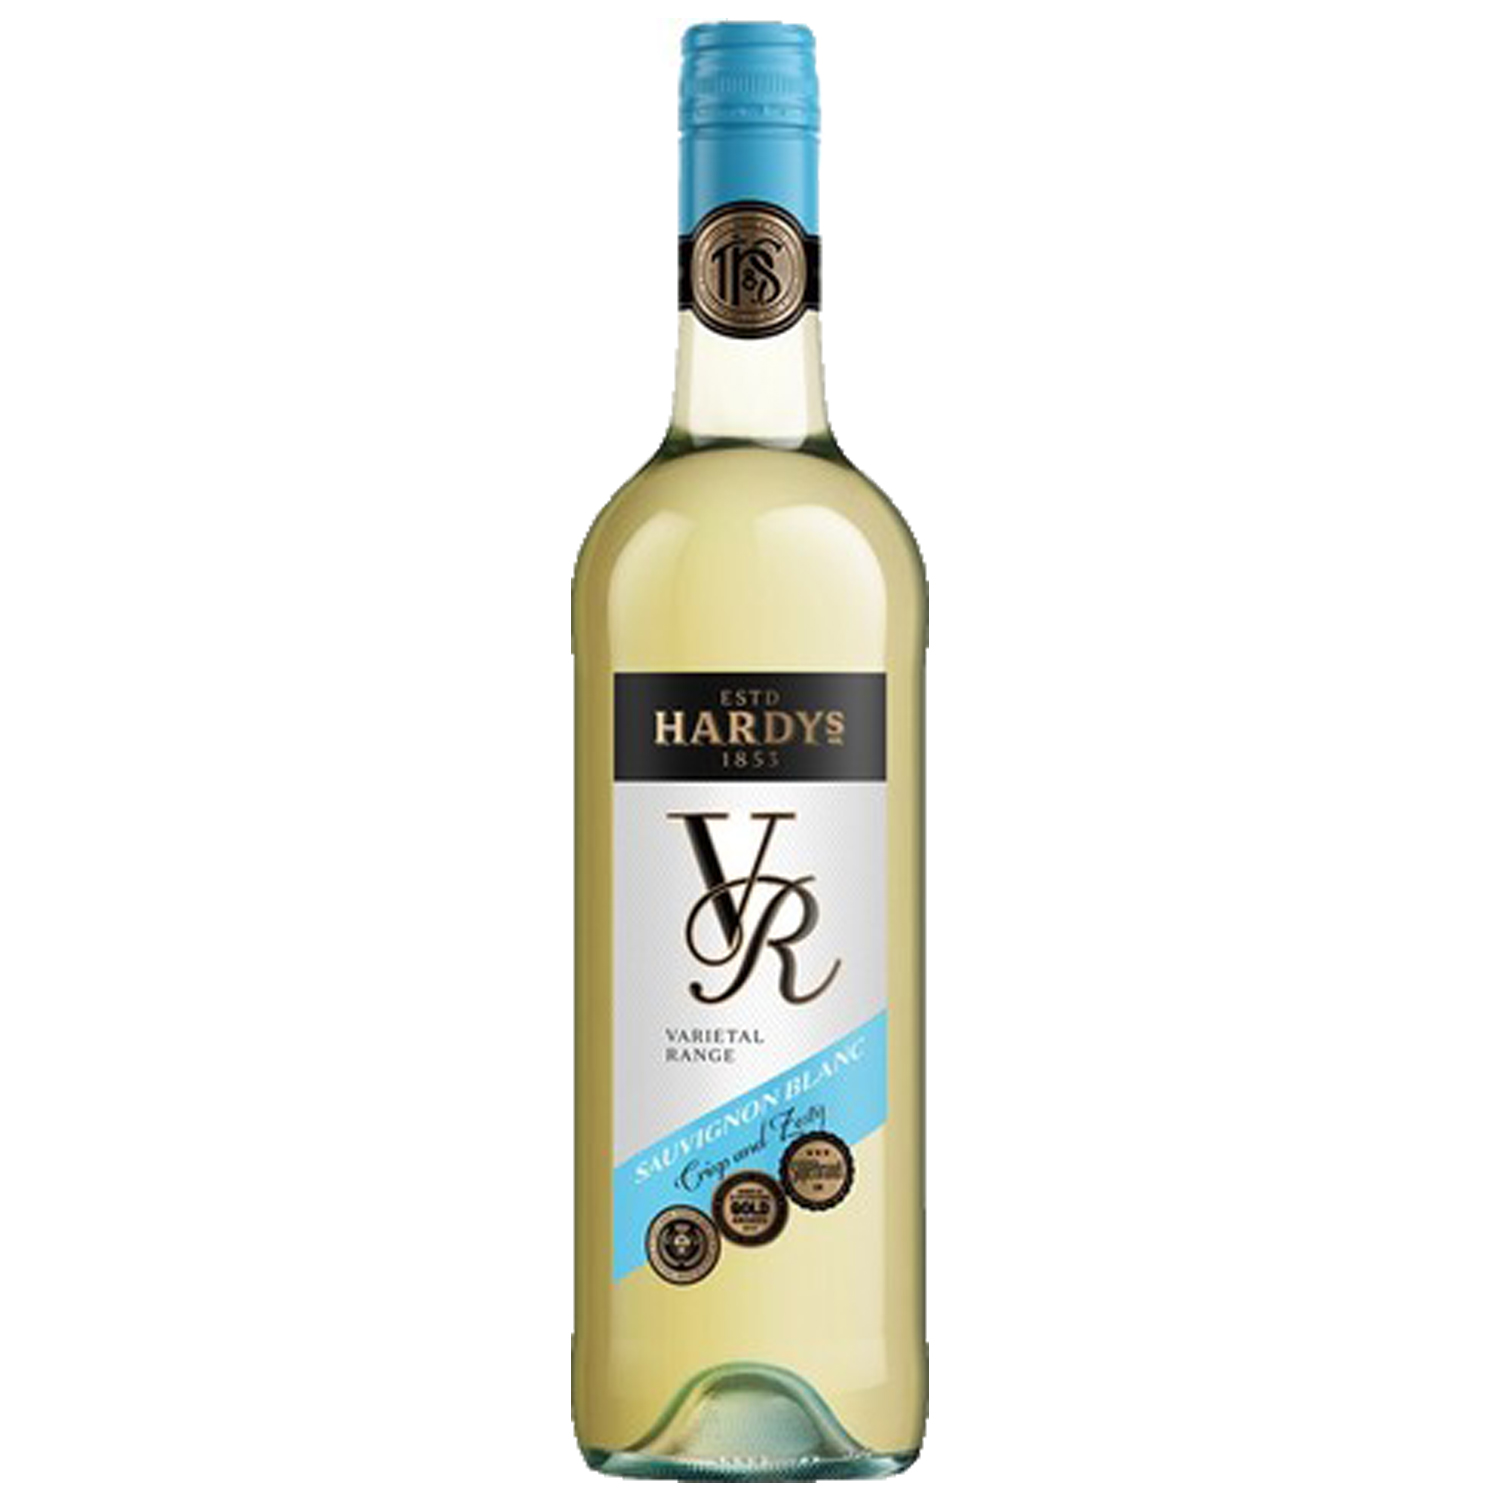 Hardys VR Series Wine - Sauvignon Blanc 750ml